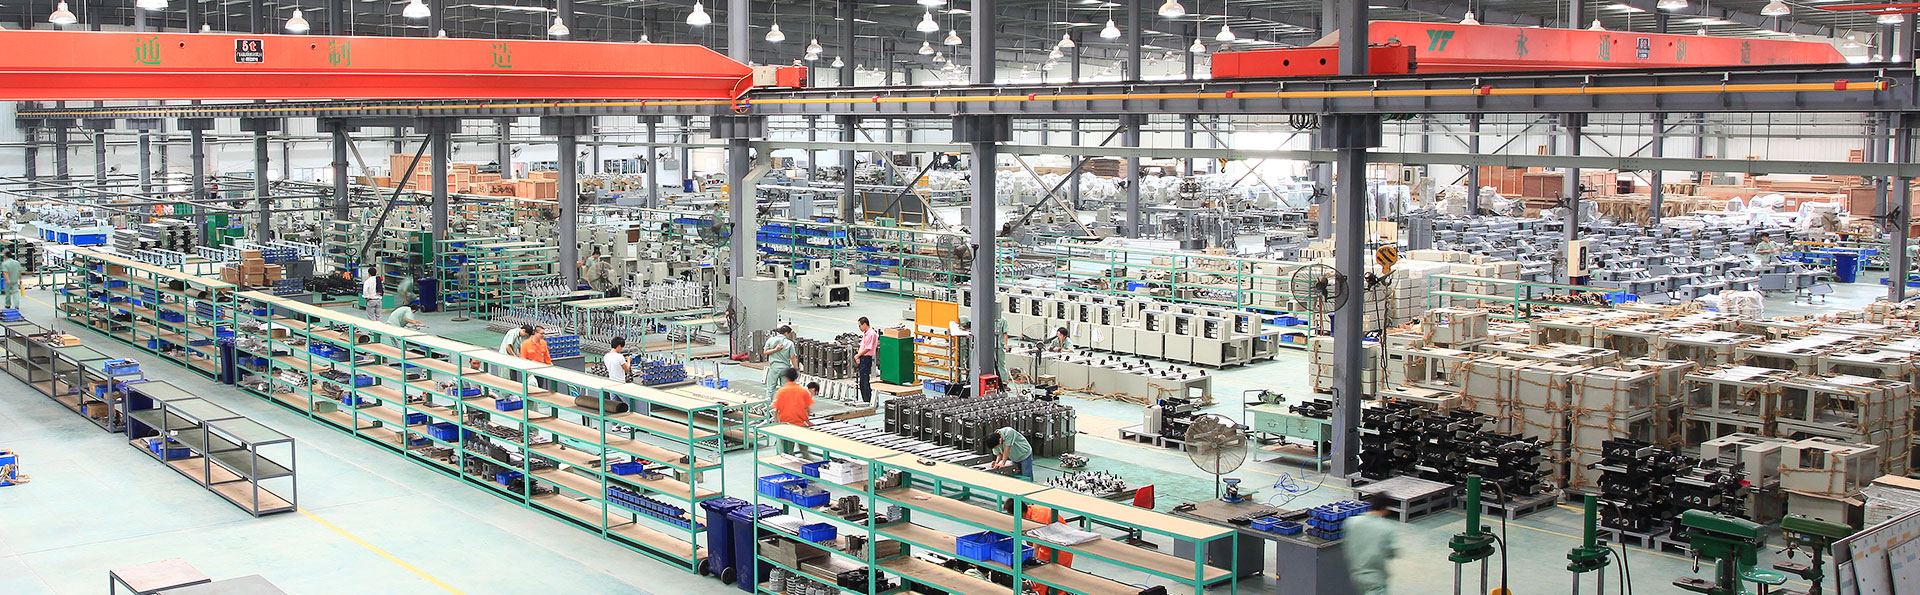 Soontrue packing machine Plant